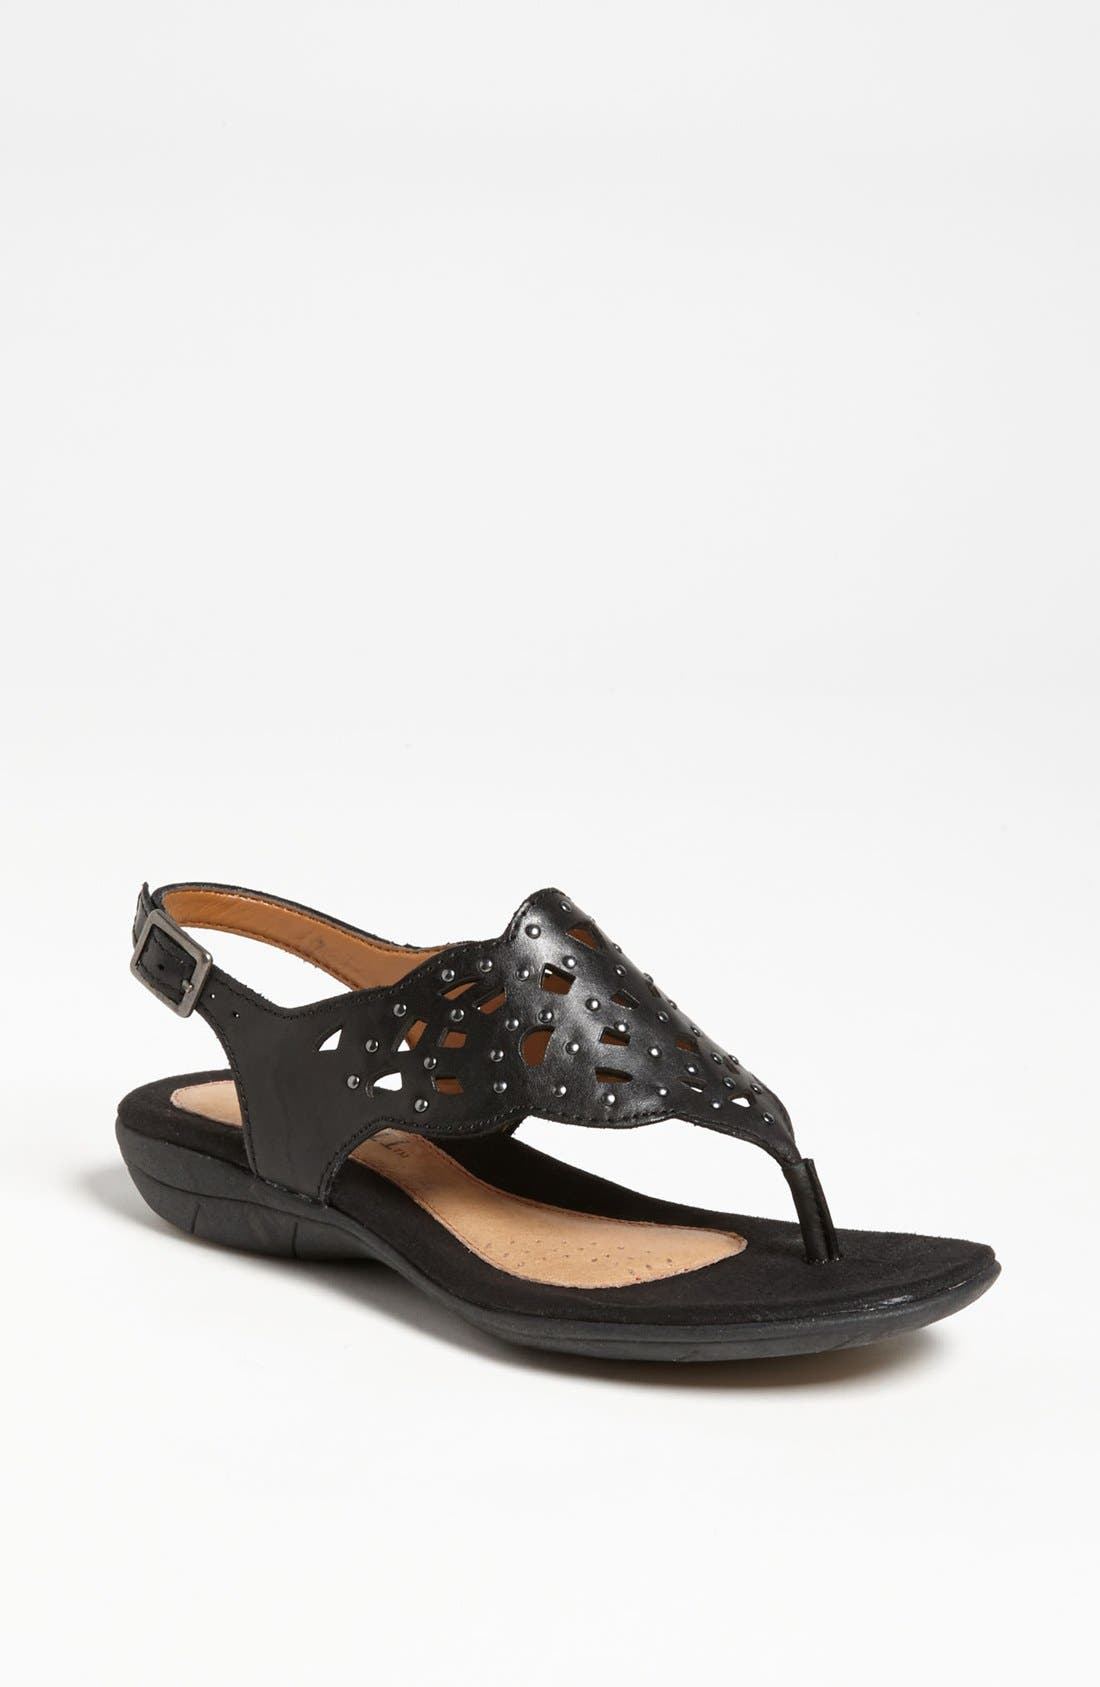 Main Image - Cobb Hill 'Willow' Sandal